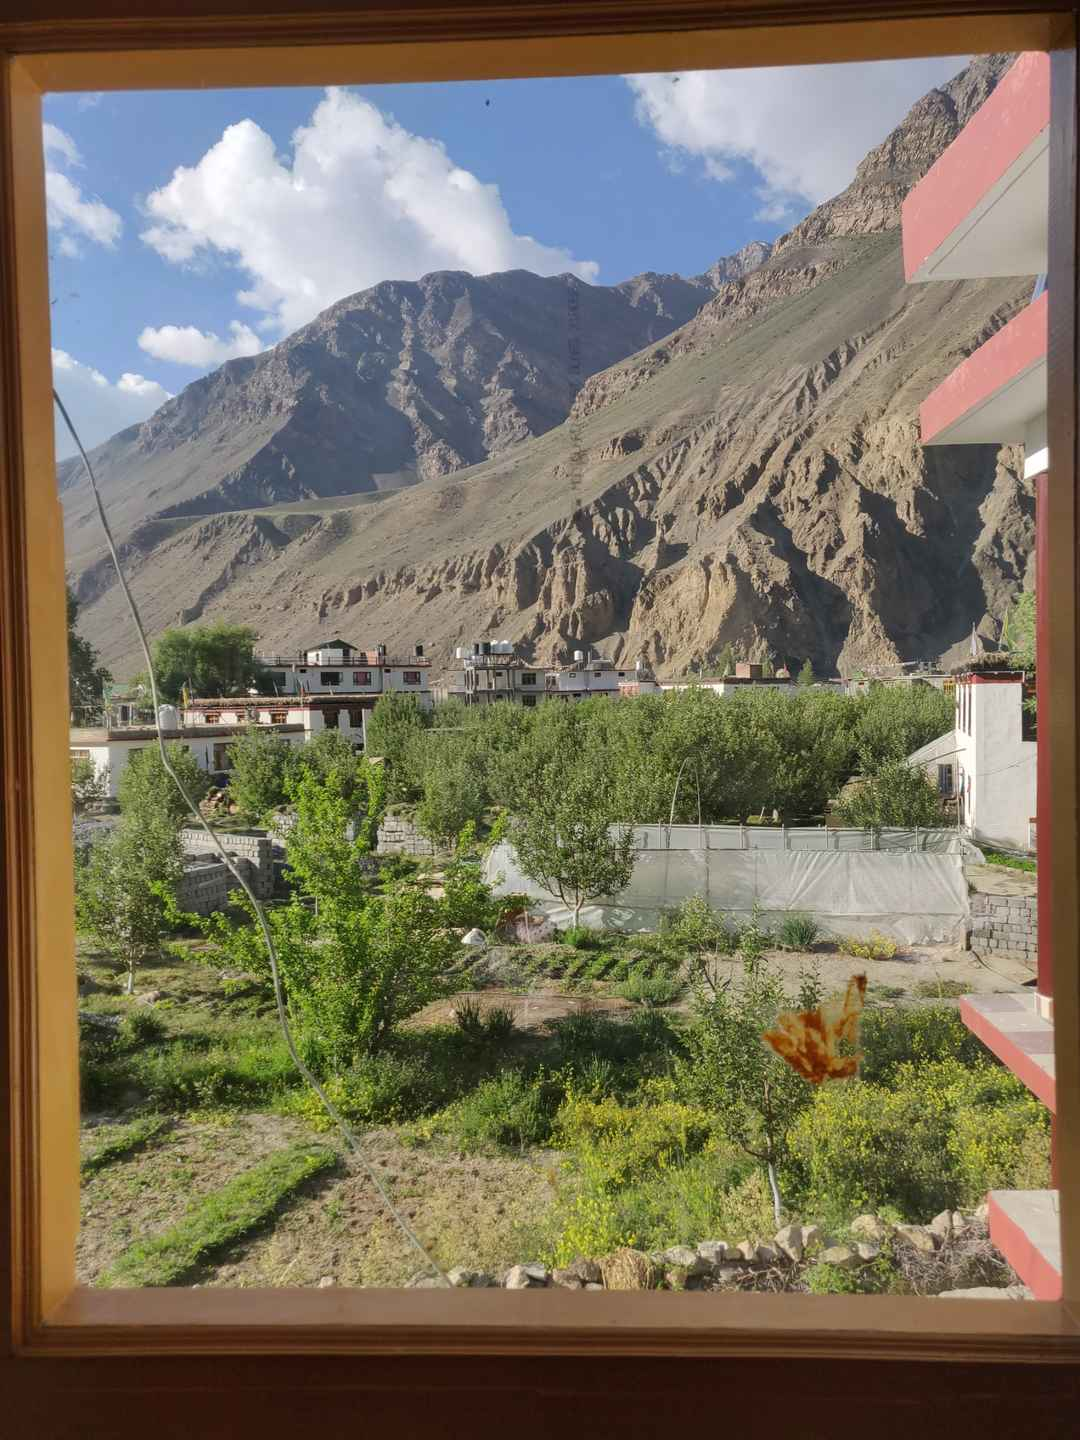 6 Very Budget Options to Stay In Spiti Valley.